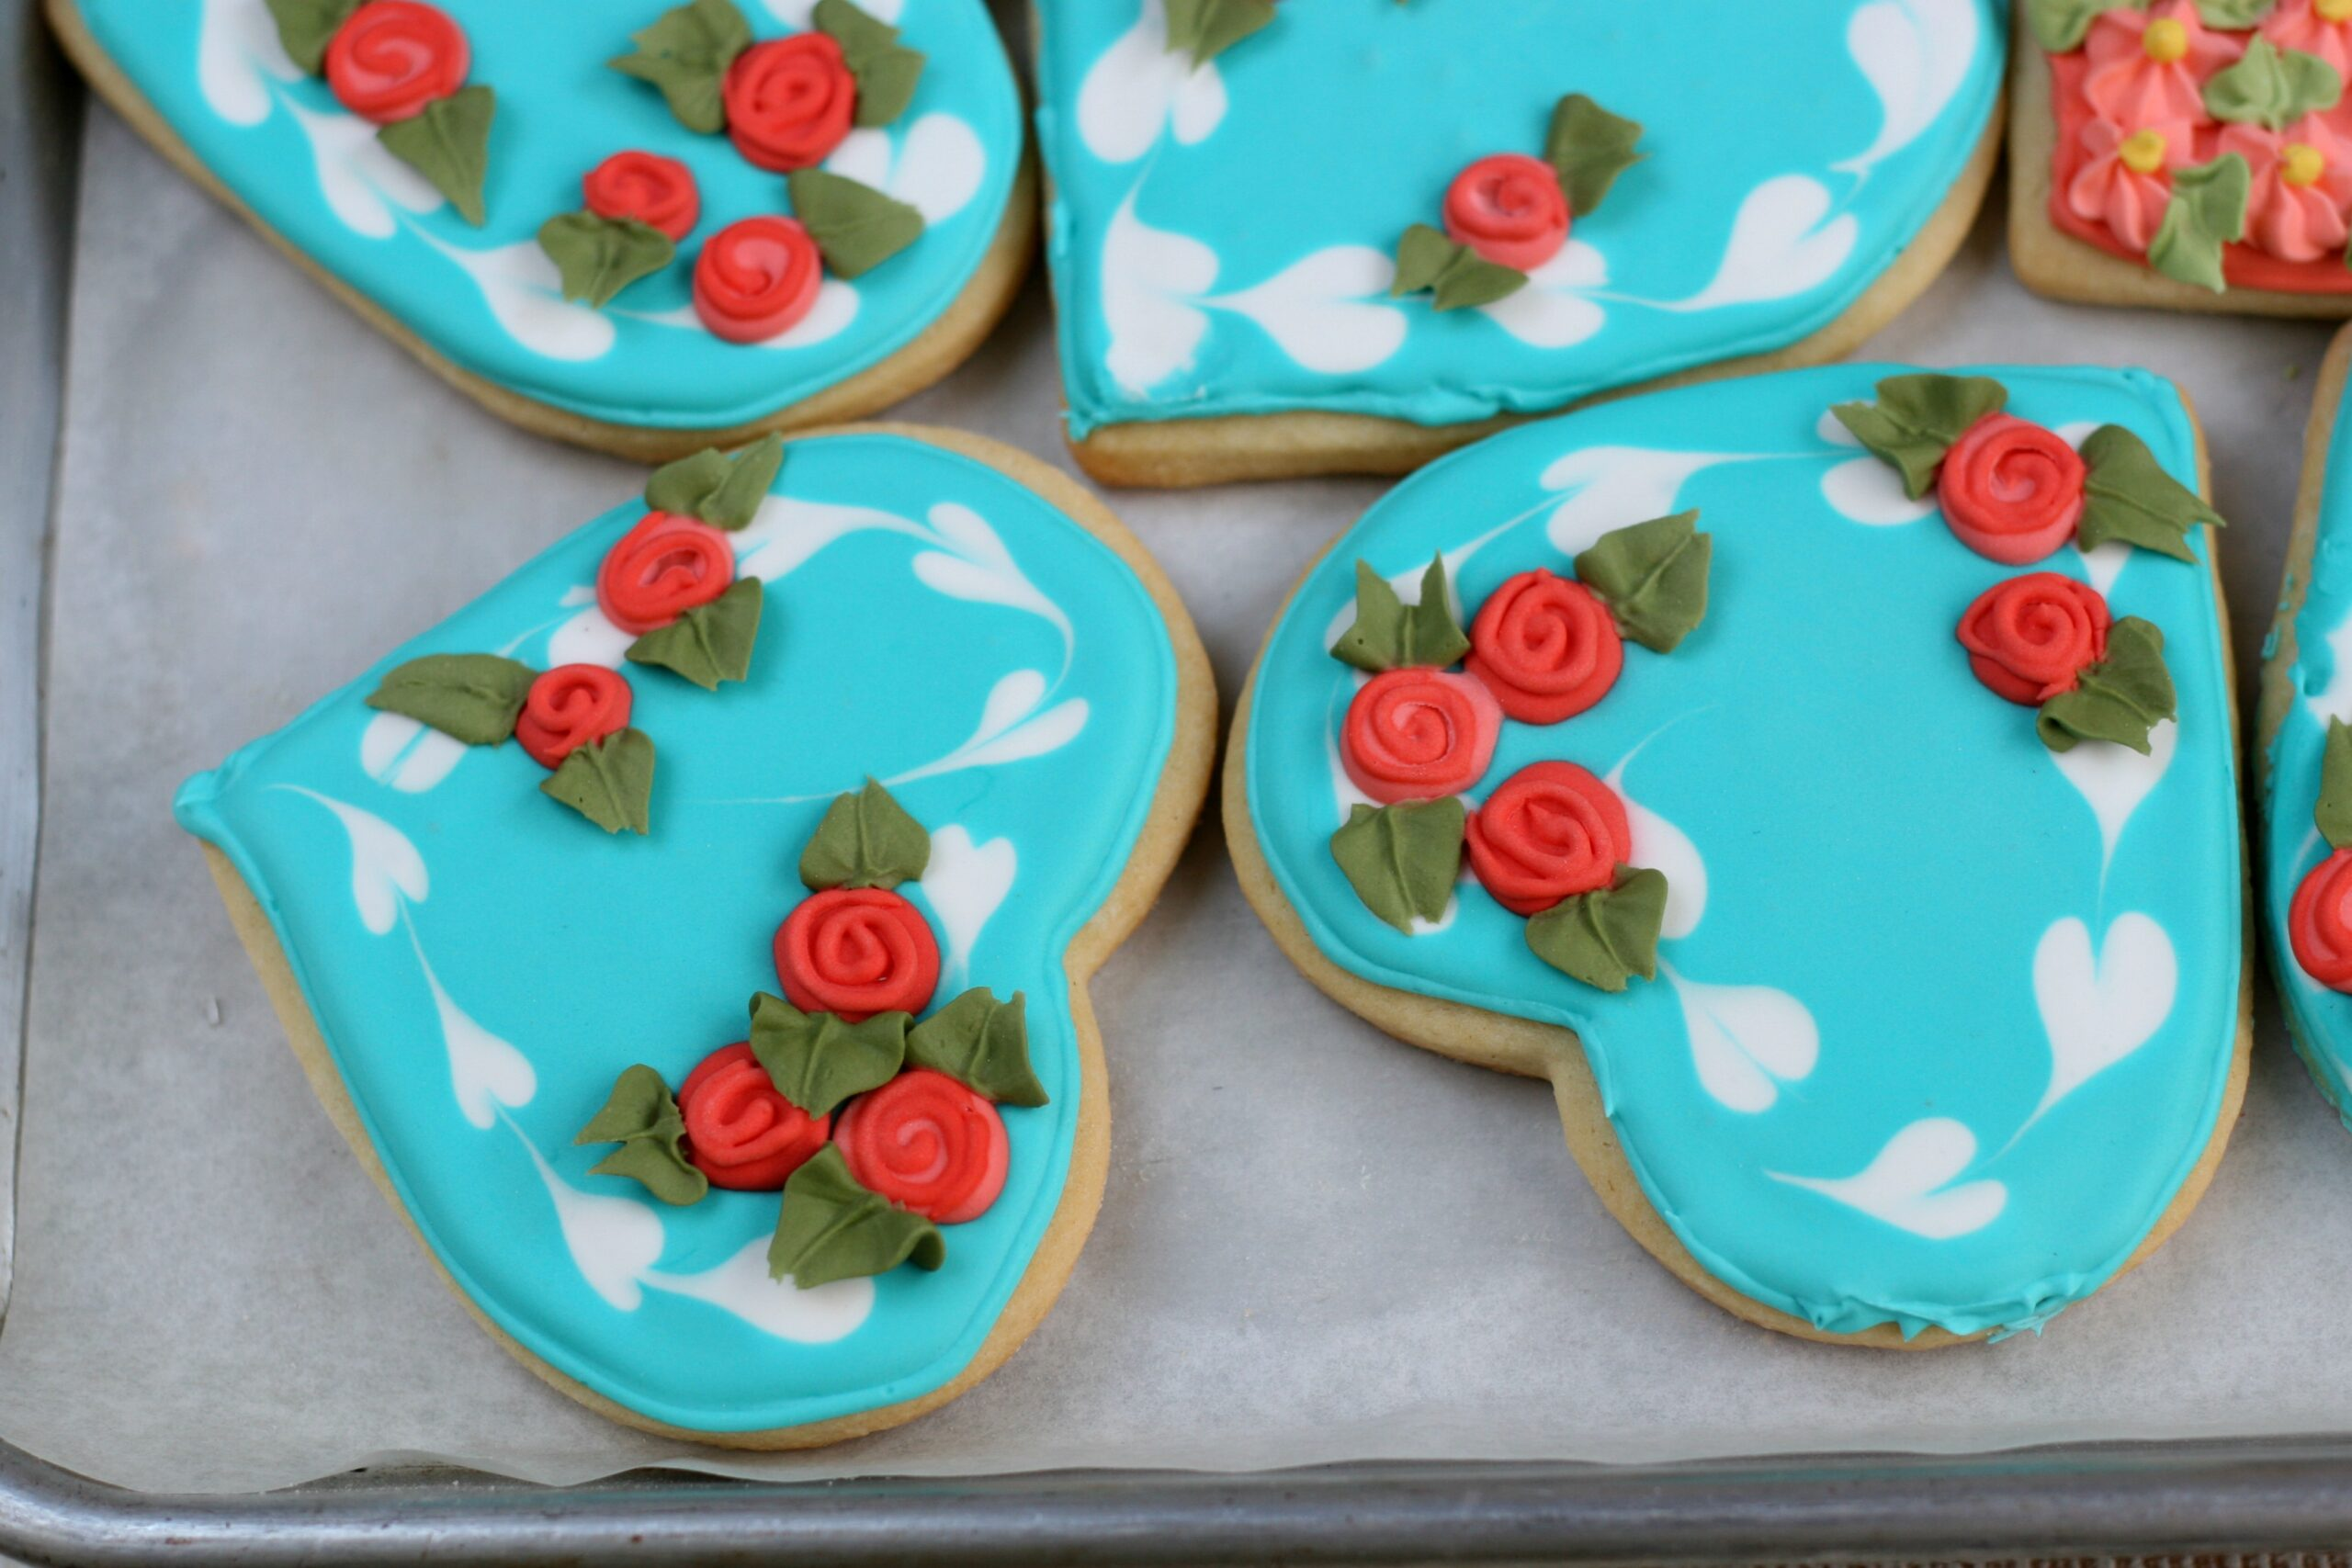 Teal color sugar cookies with red roses and leaf details with royal icing.